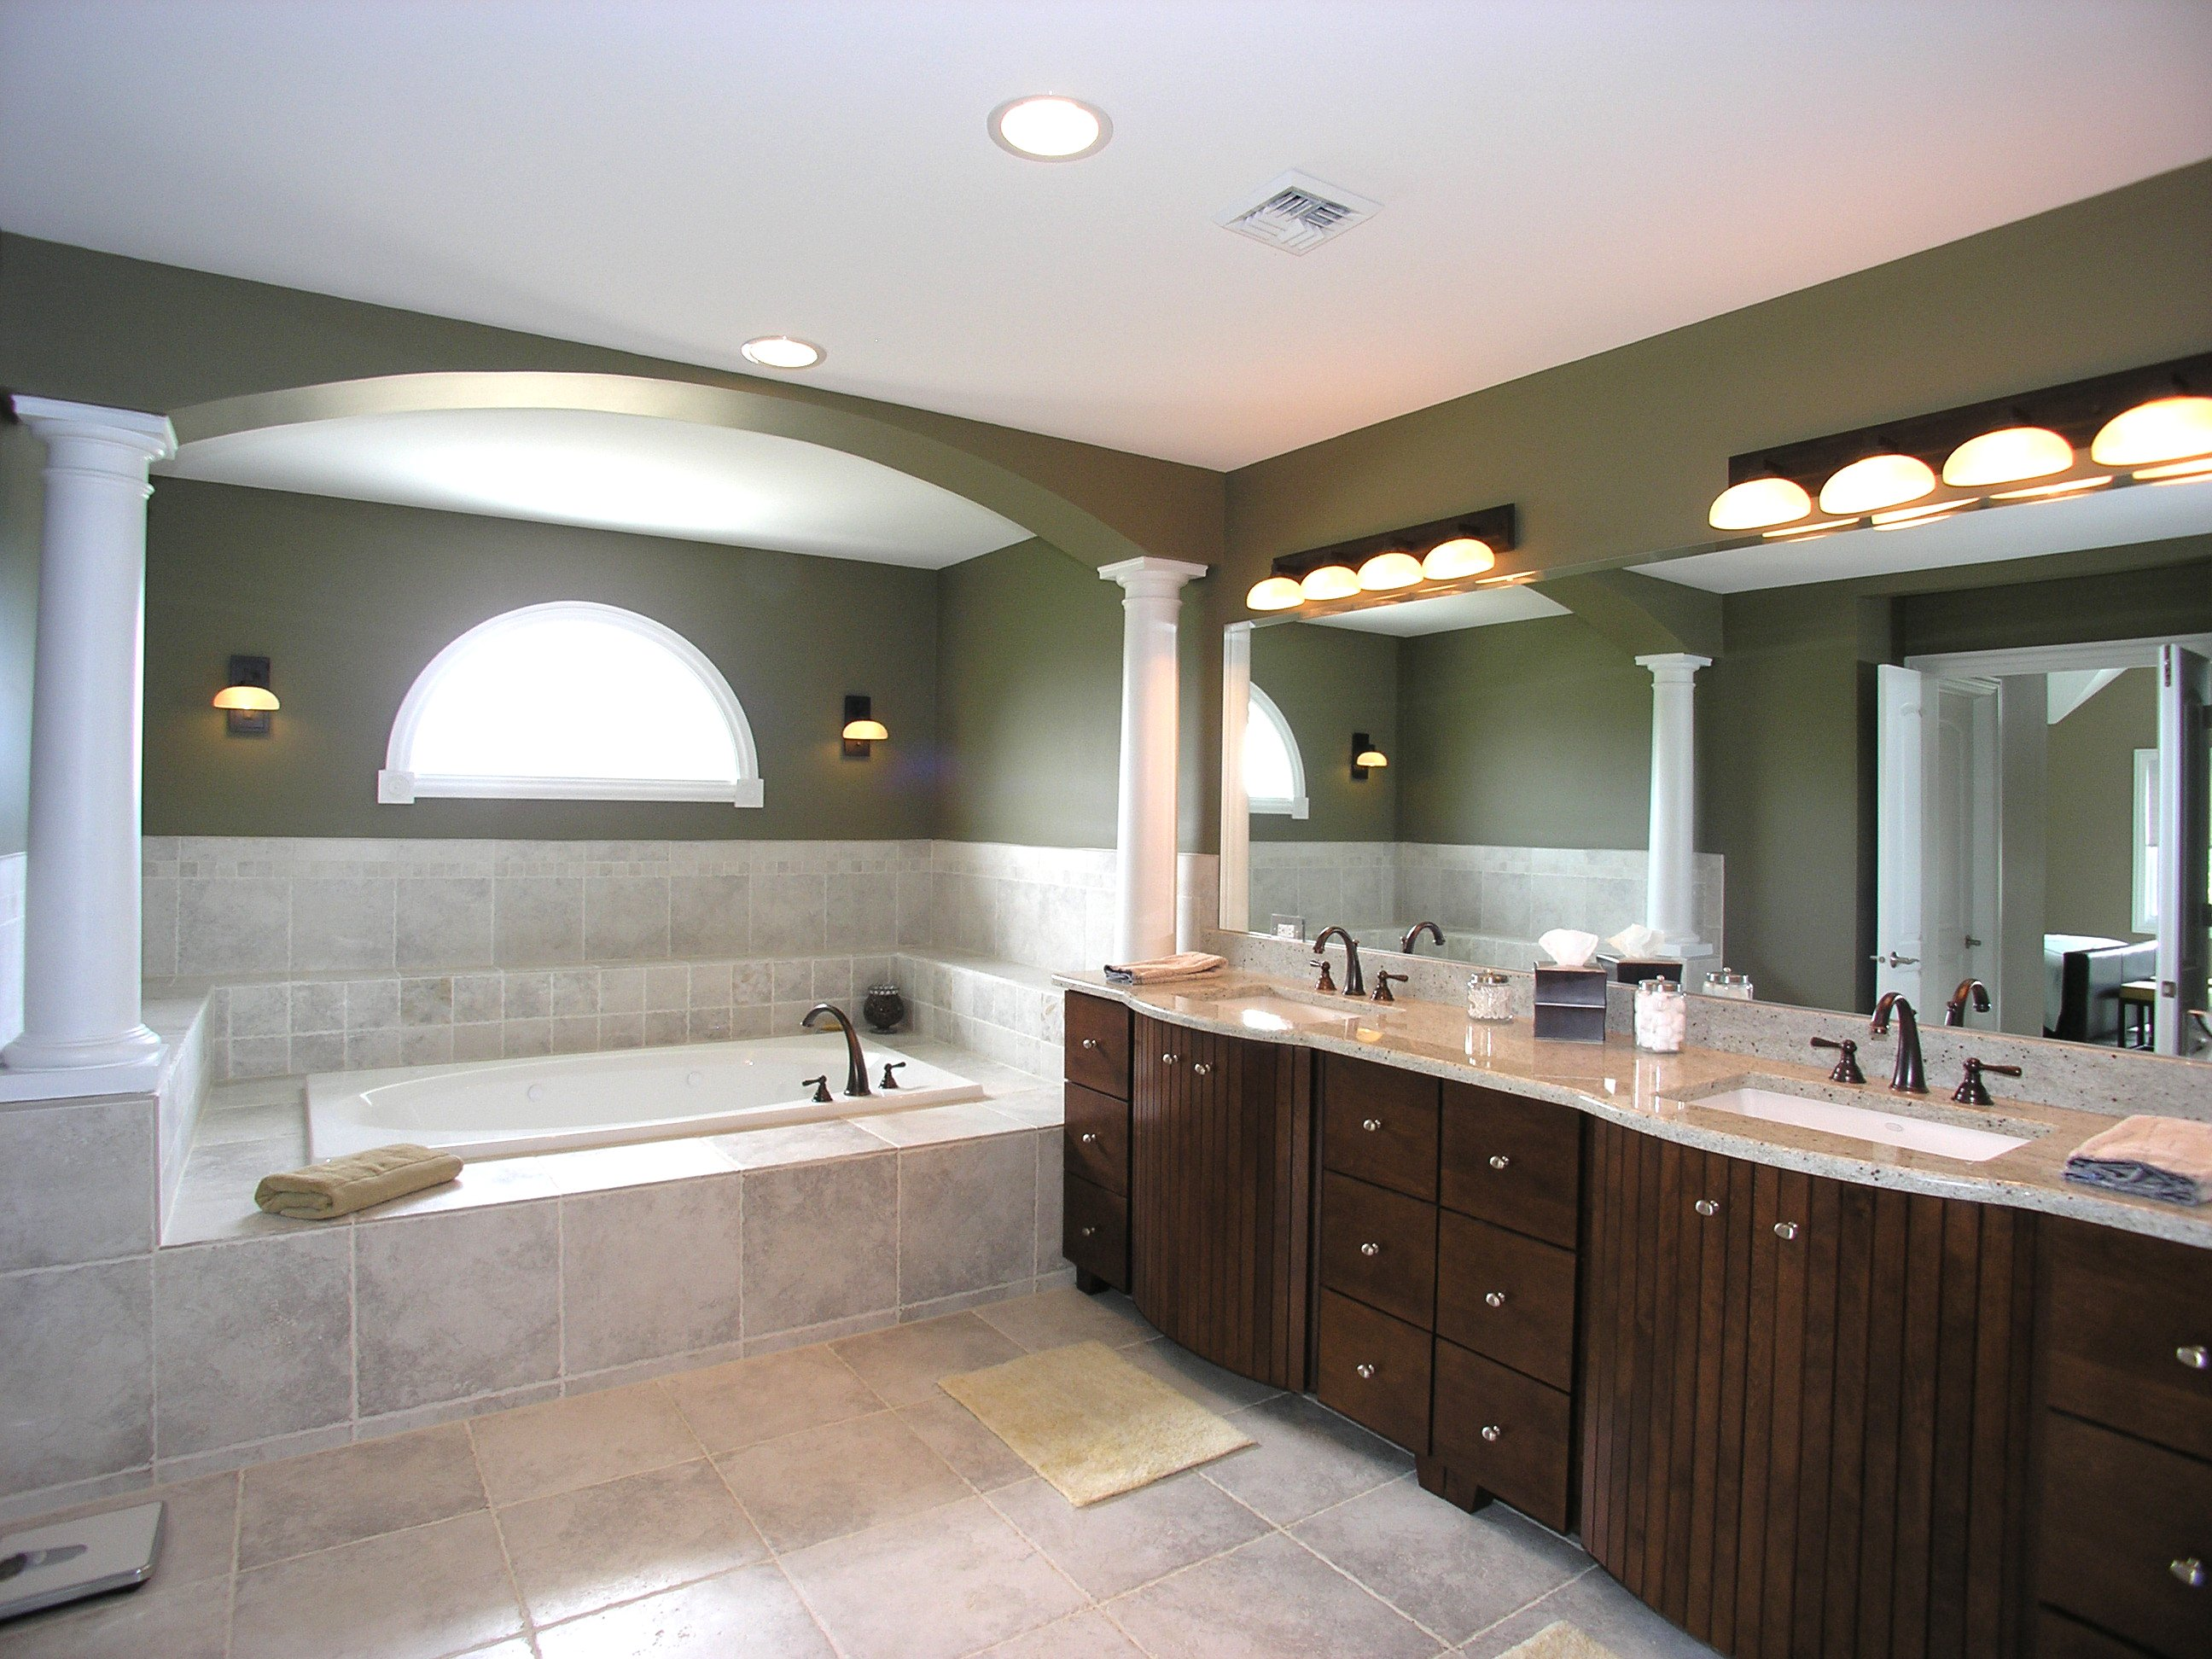 bathroom fixtures knoxville tn advantages and disadvantages of buying your bathroom remodeling - Bathroom Cabinets Knoxville Tn